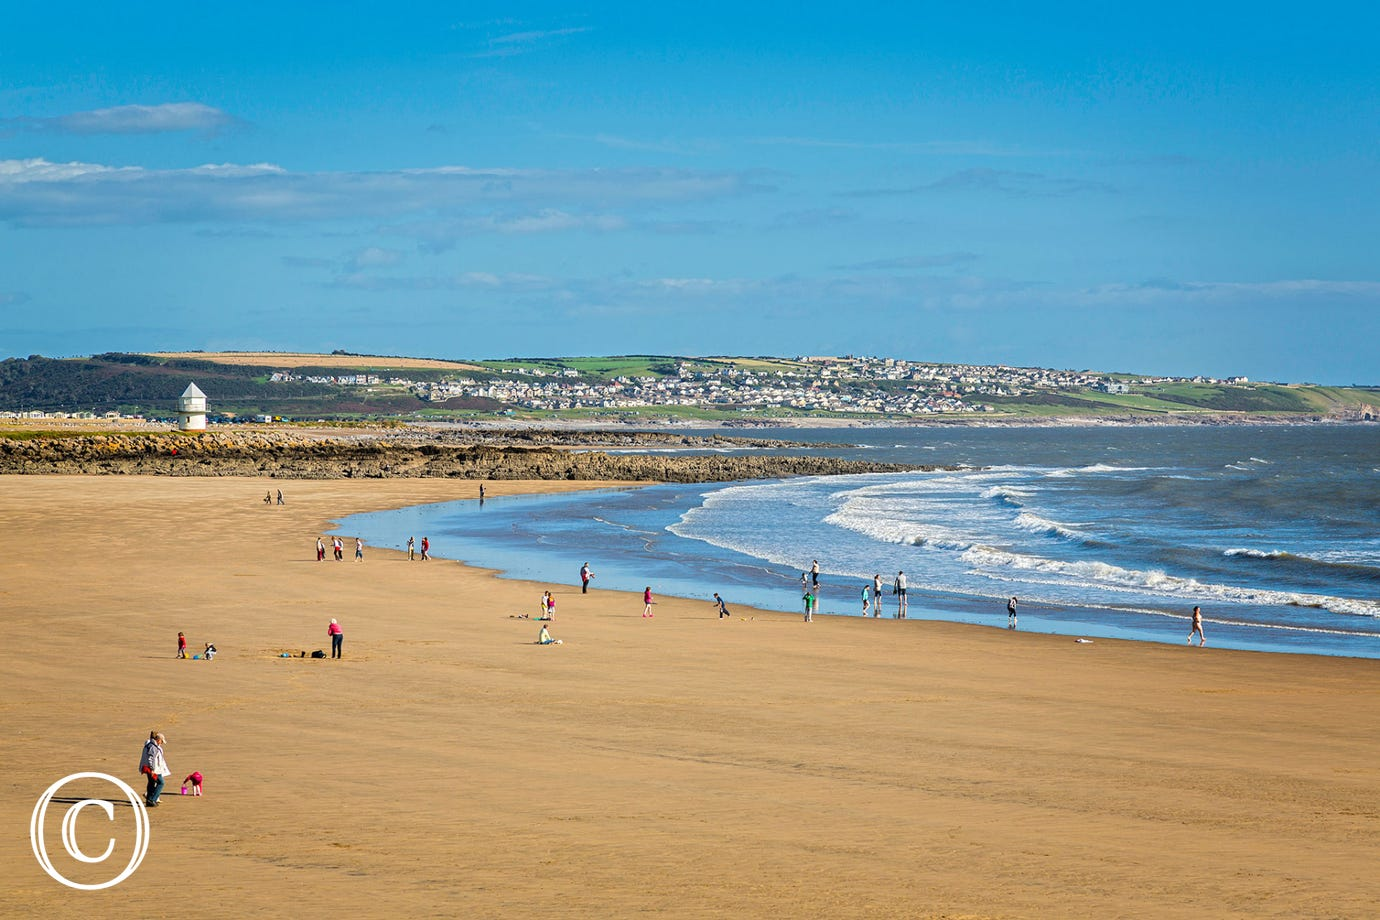 One of the sandy beaches in Porthcawl